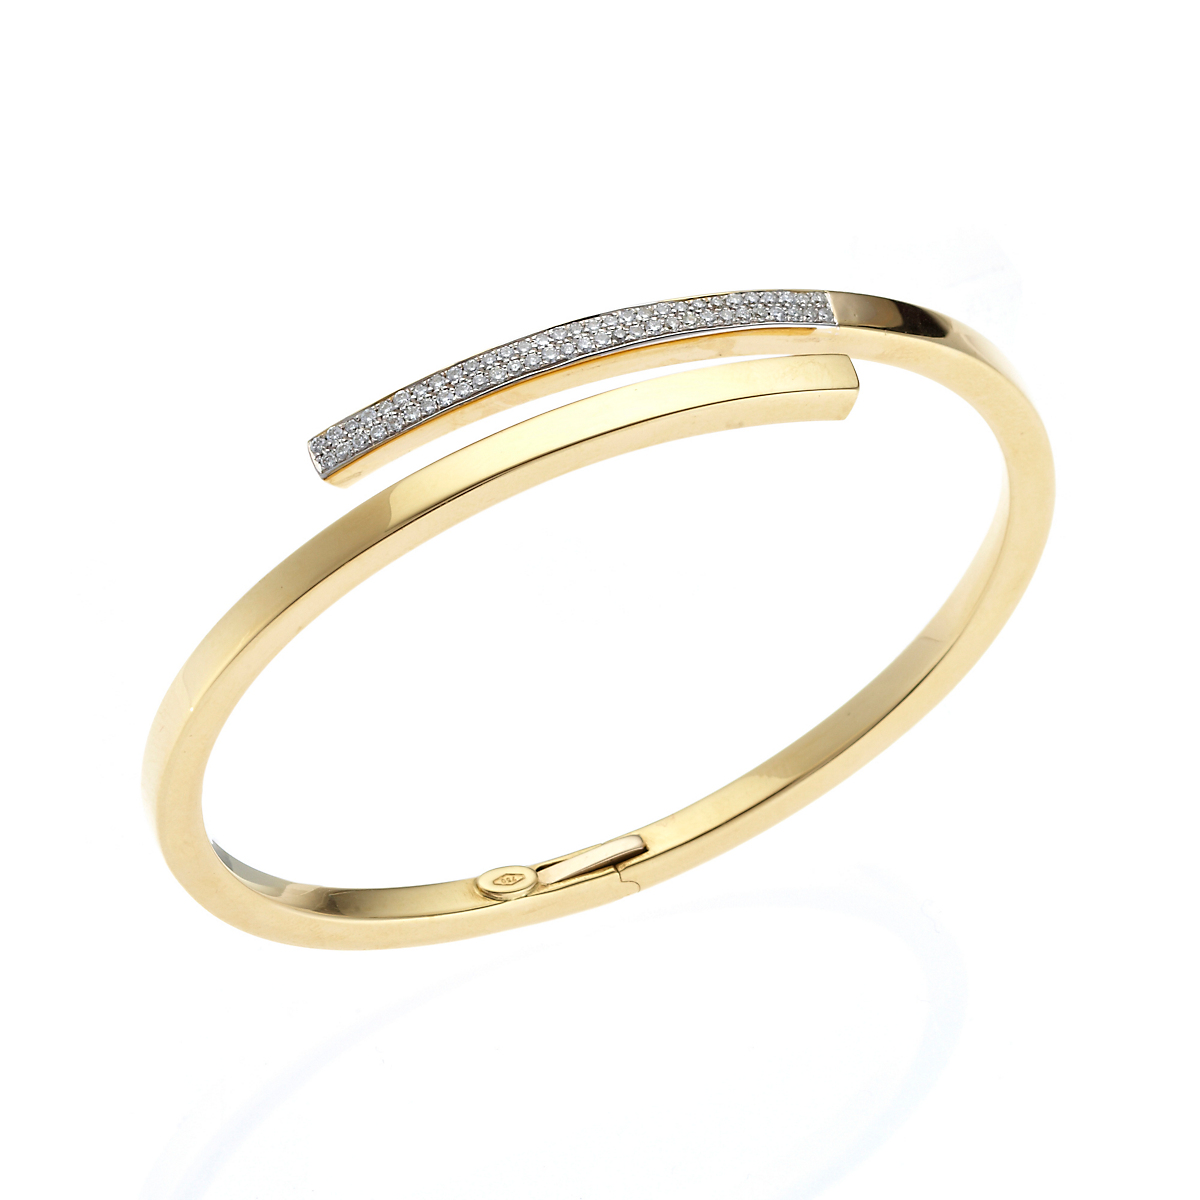 Gold & Diamond Bypass Bangle